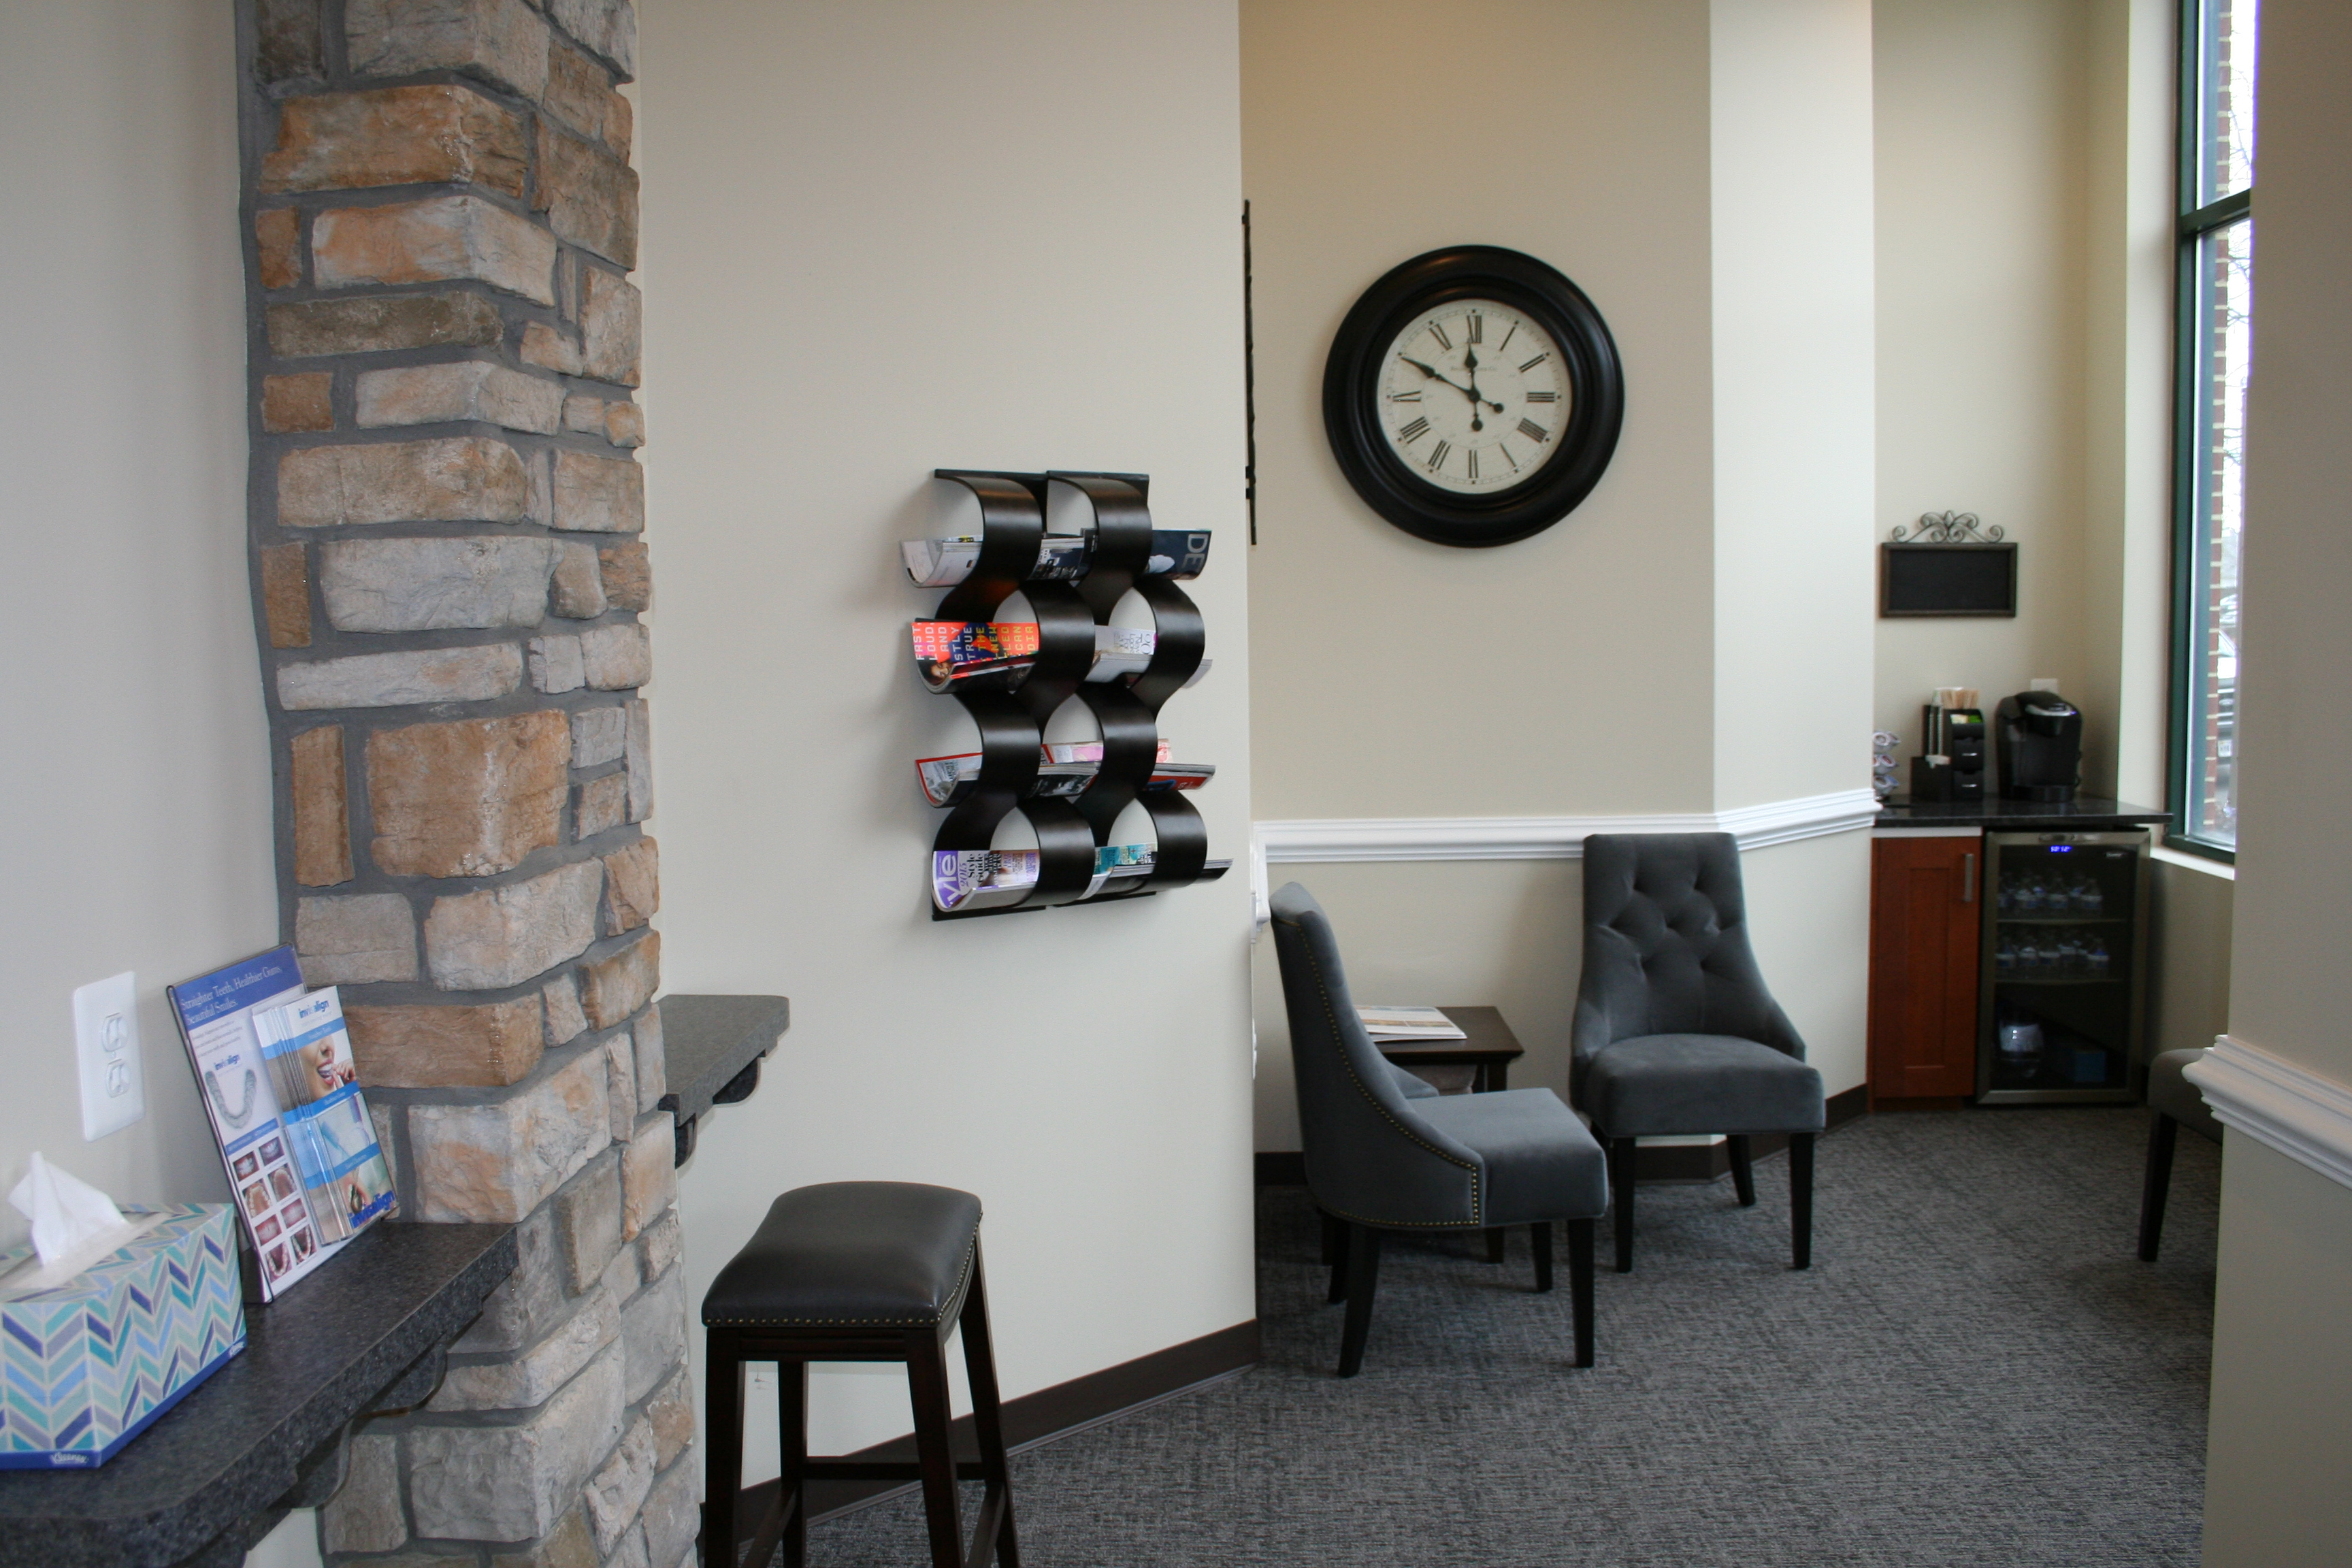 Braddock Dental - Waiting Room